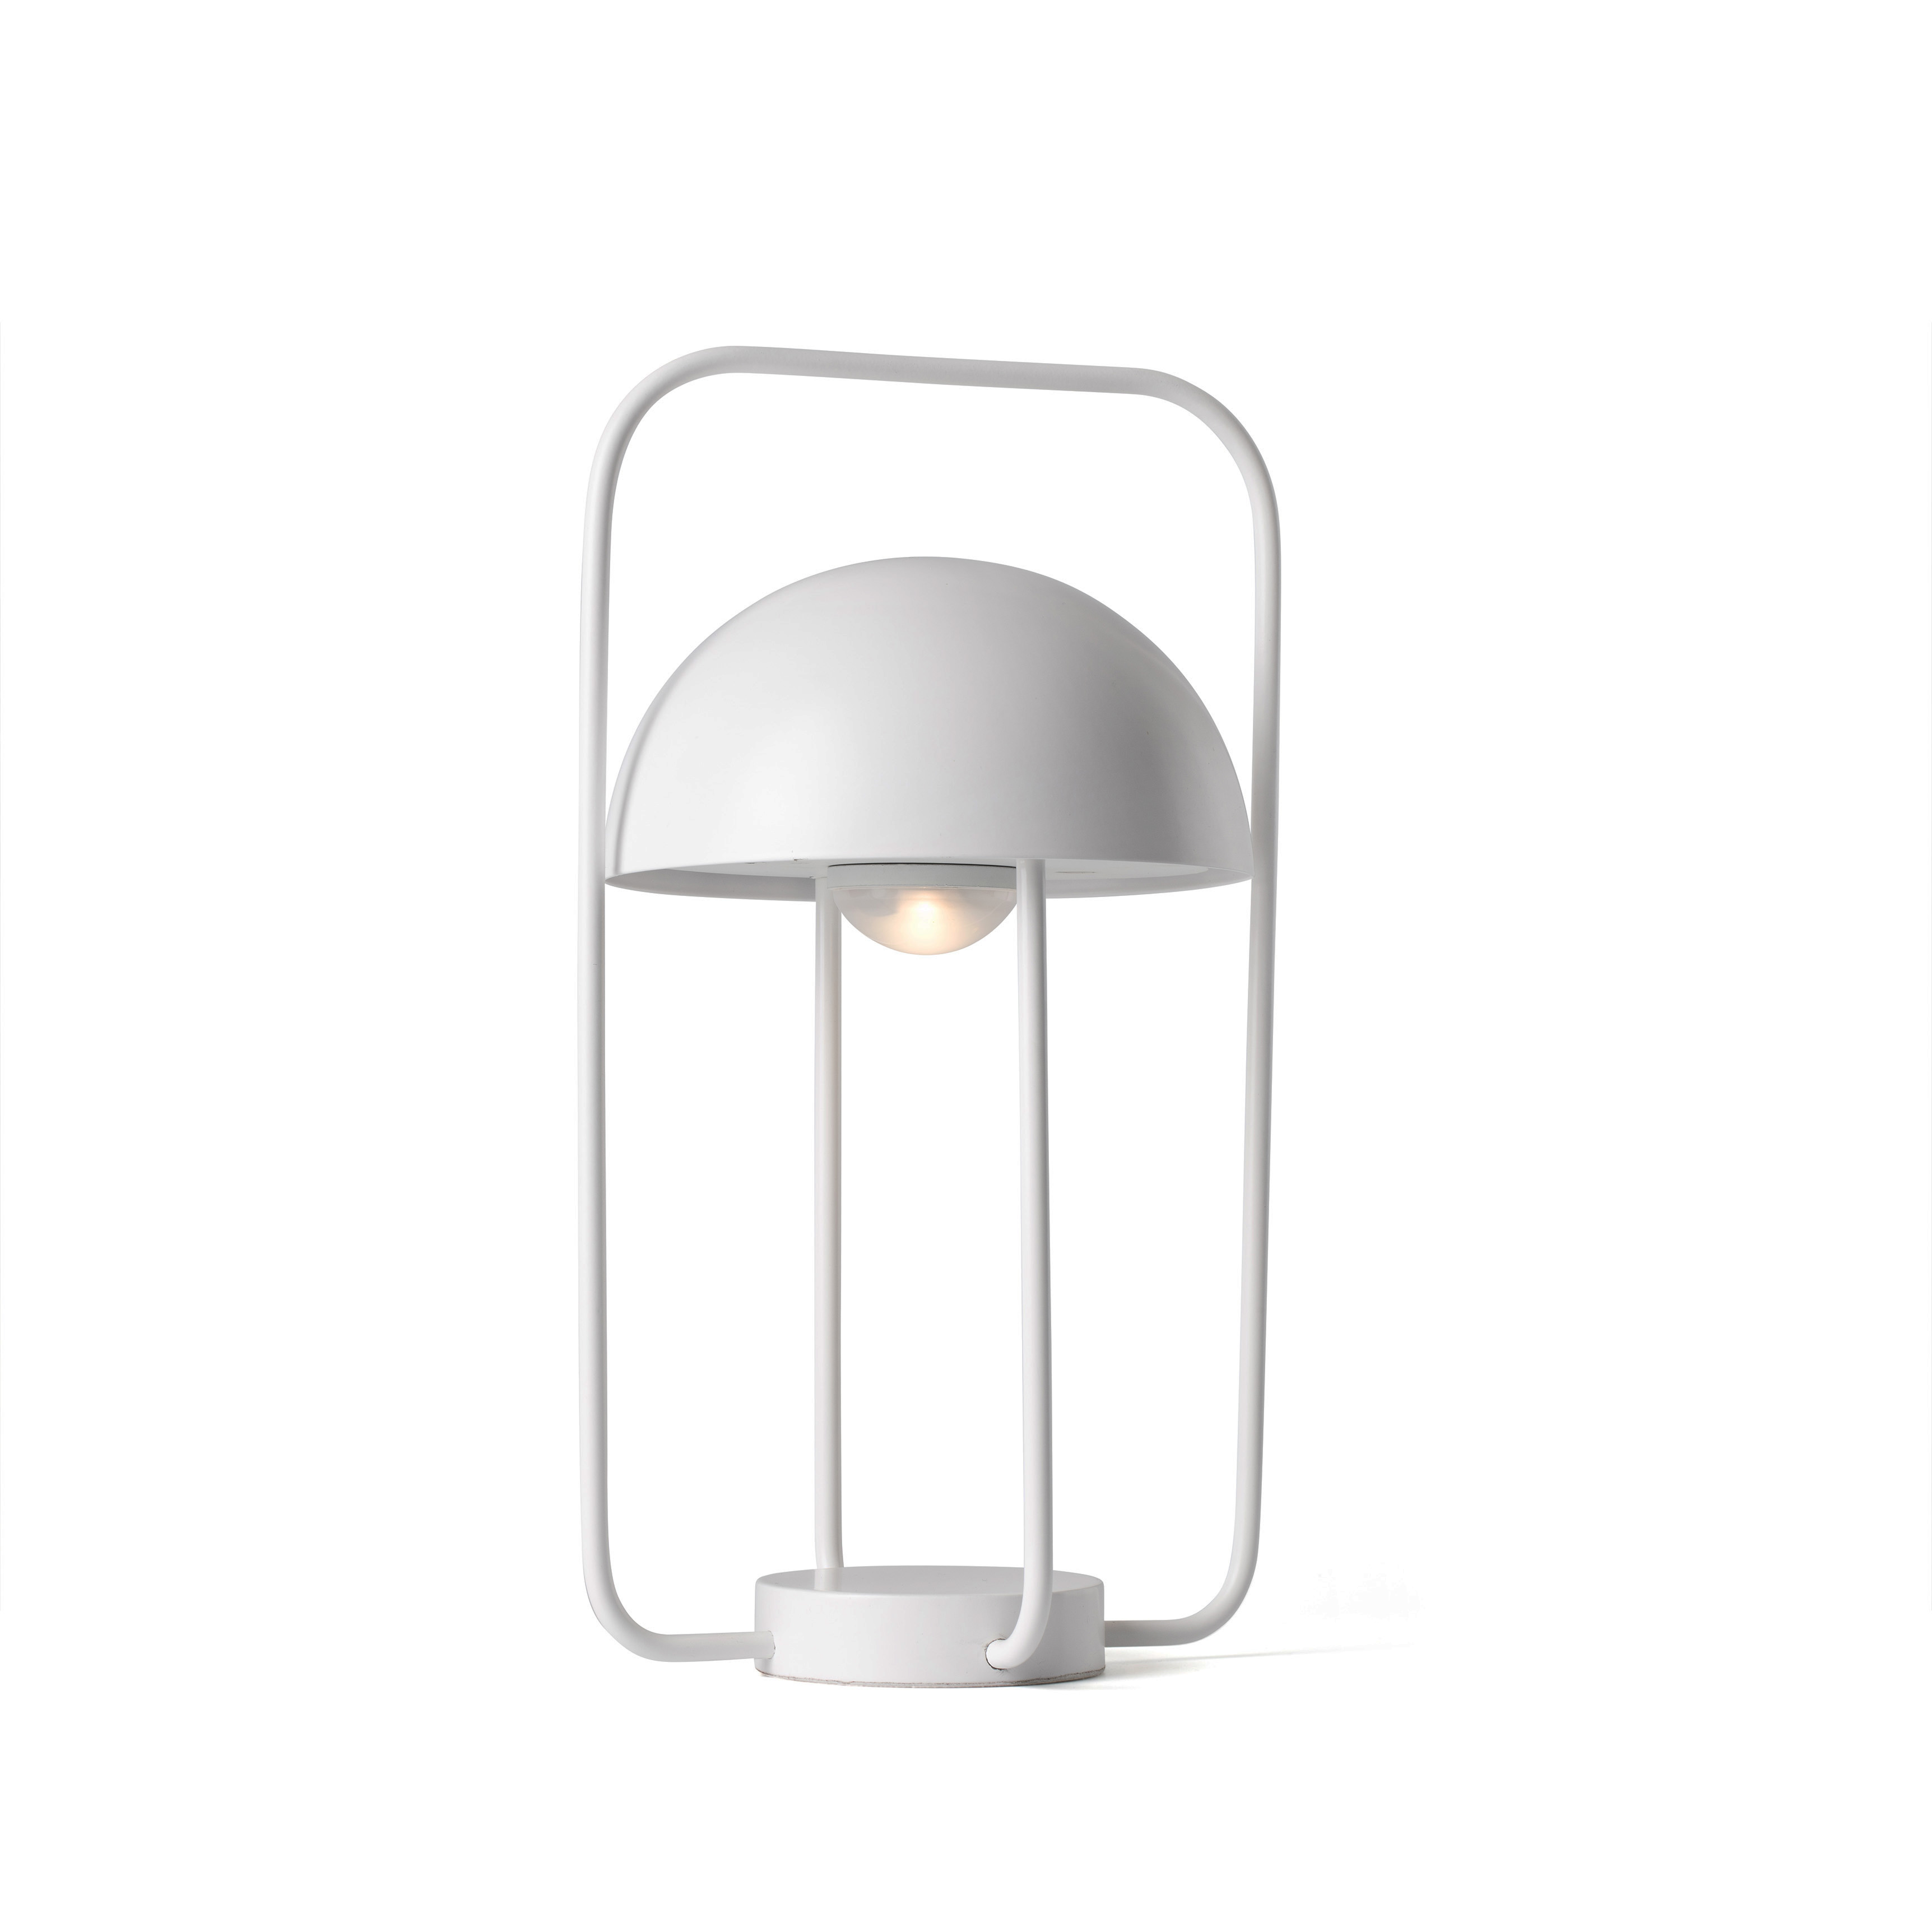 Lampa LED portabila JELLYFISH white 24524